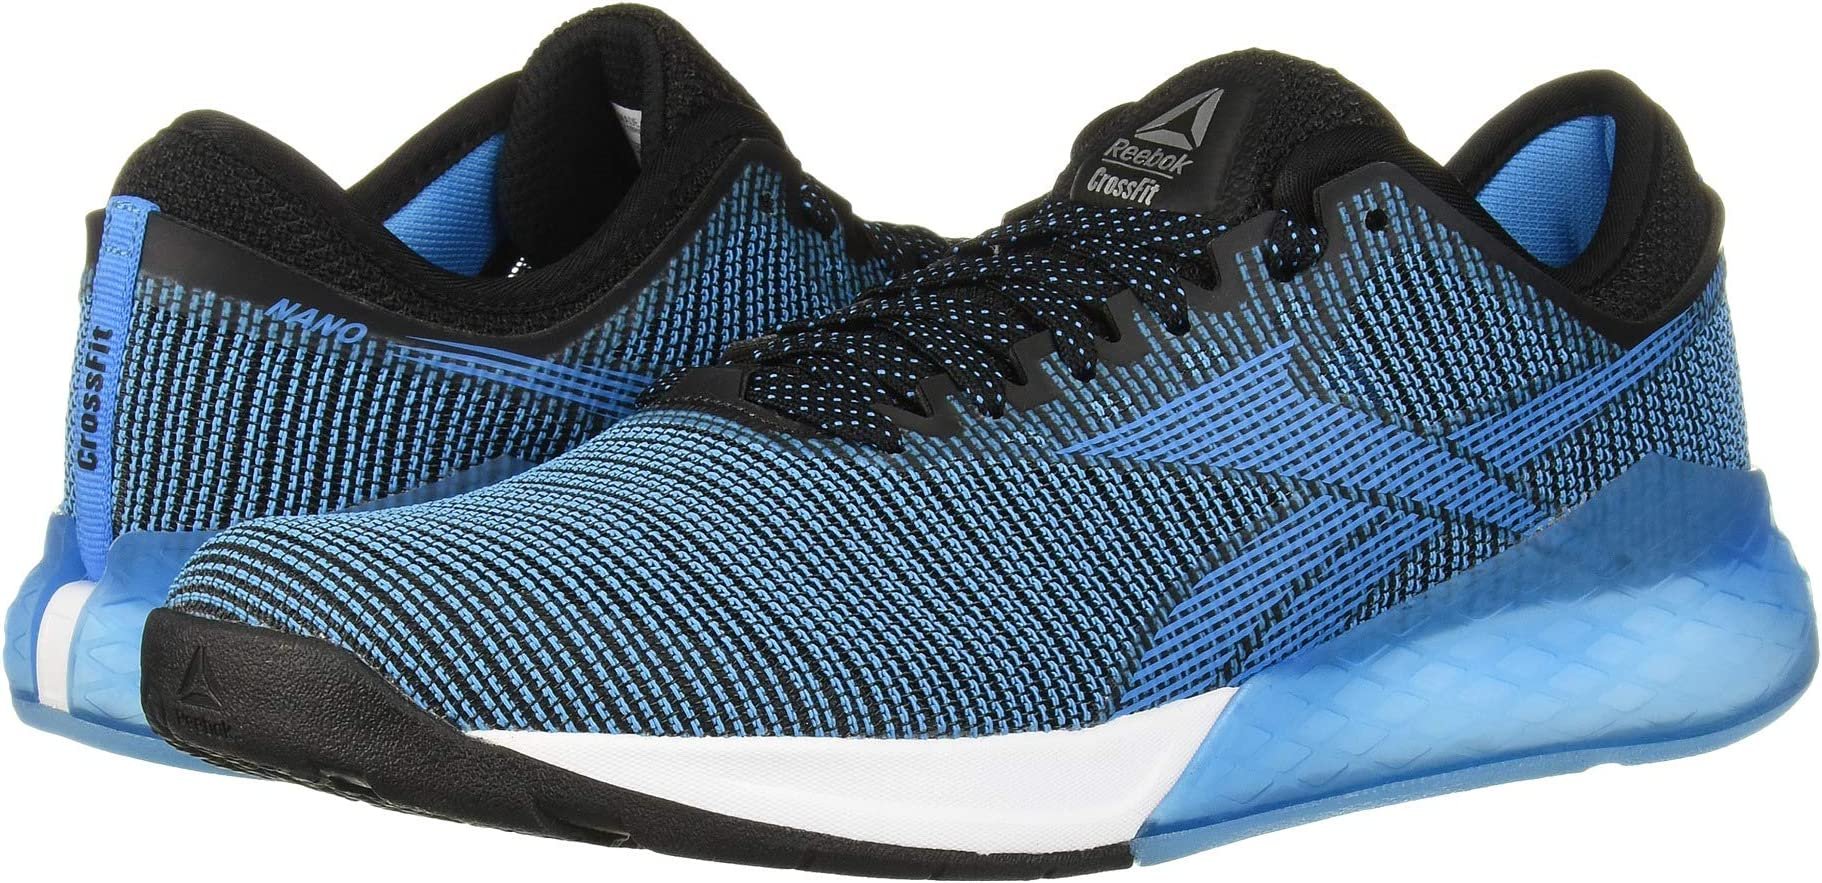 114823b1d3 Reebok Shoes for Running, Training, and More | Zappos.com